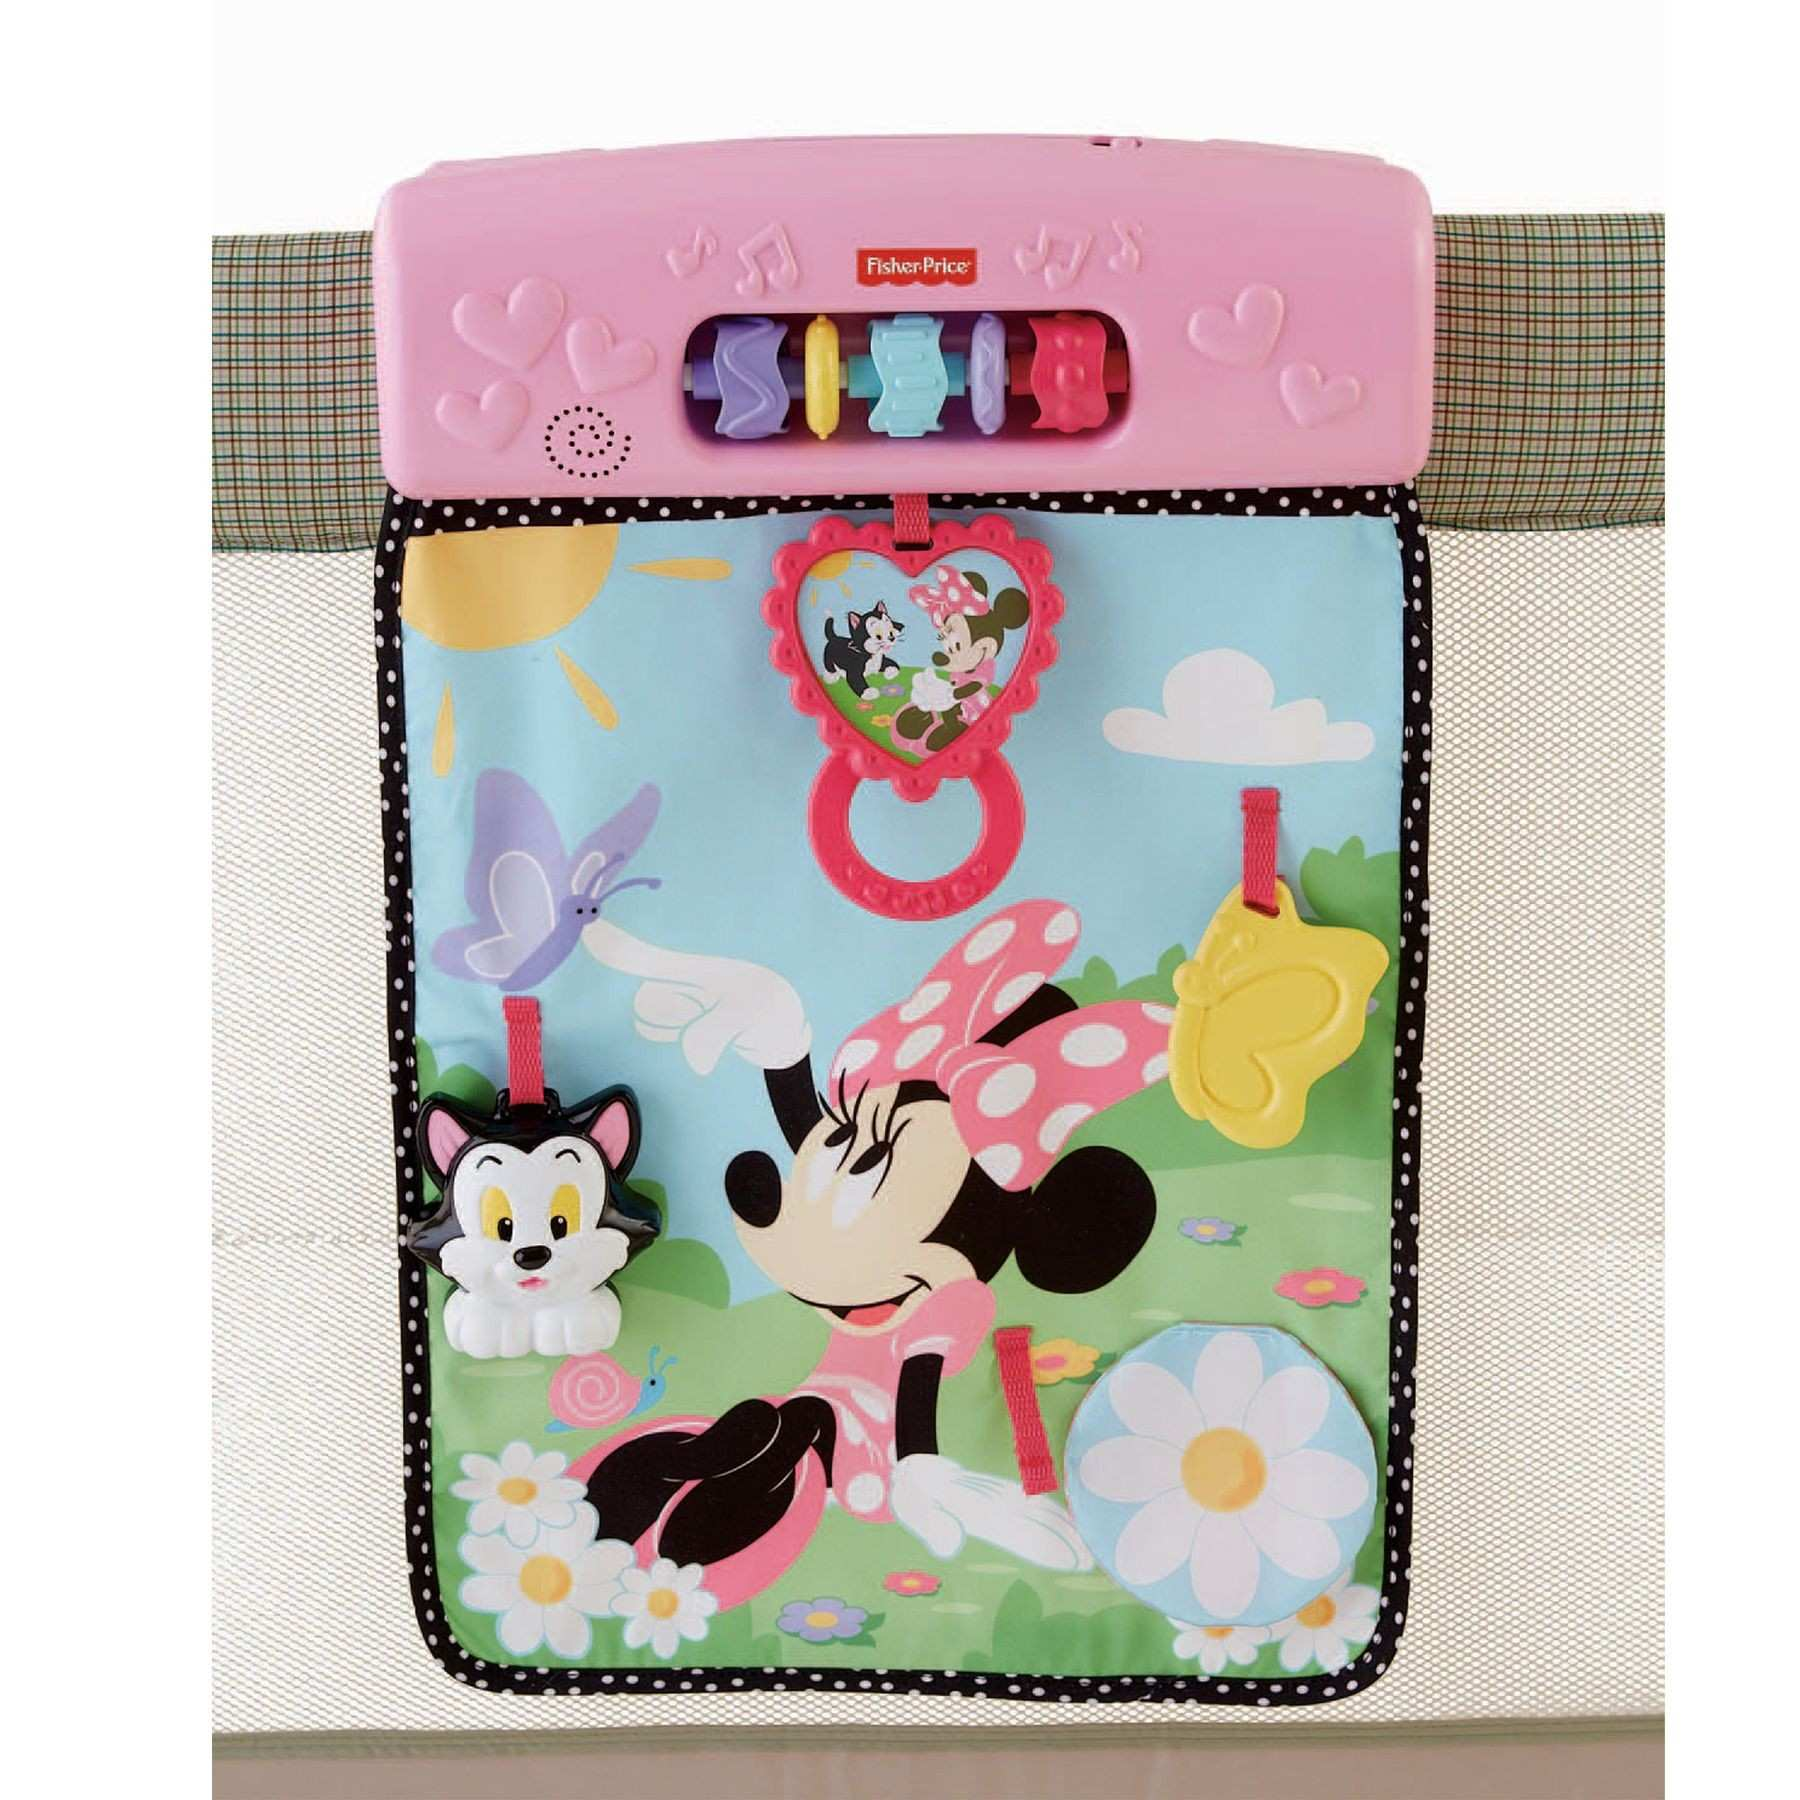 MINNIE MOUSE Musical Activity Play Wall from Fisher Price